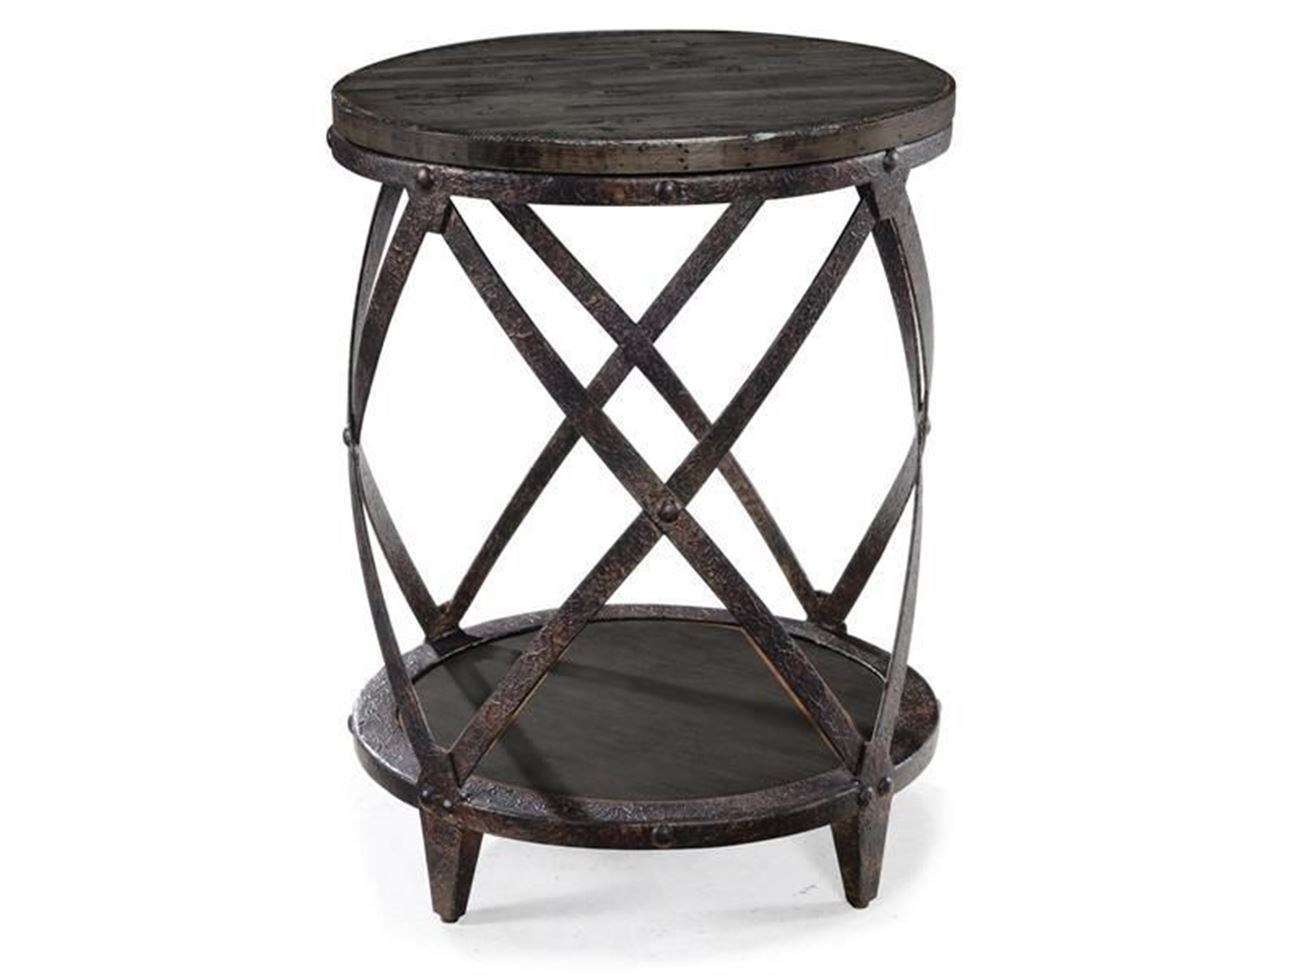 milford round accent table woodstock furniture mattress black ture bar height chairs coffee with metal legs wood nightstand drawers teton side storage office desk ideas mirror